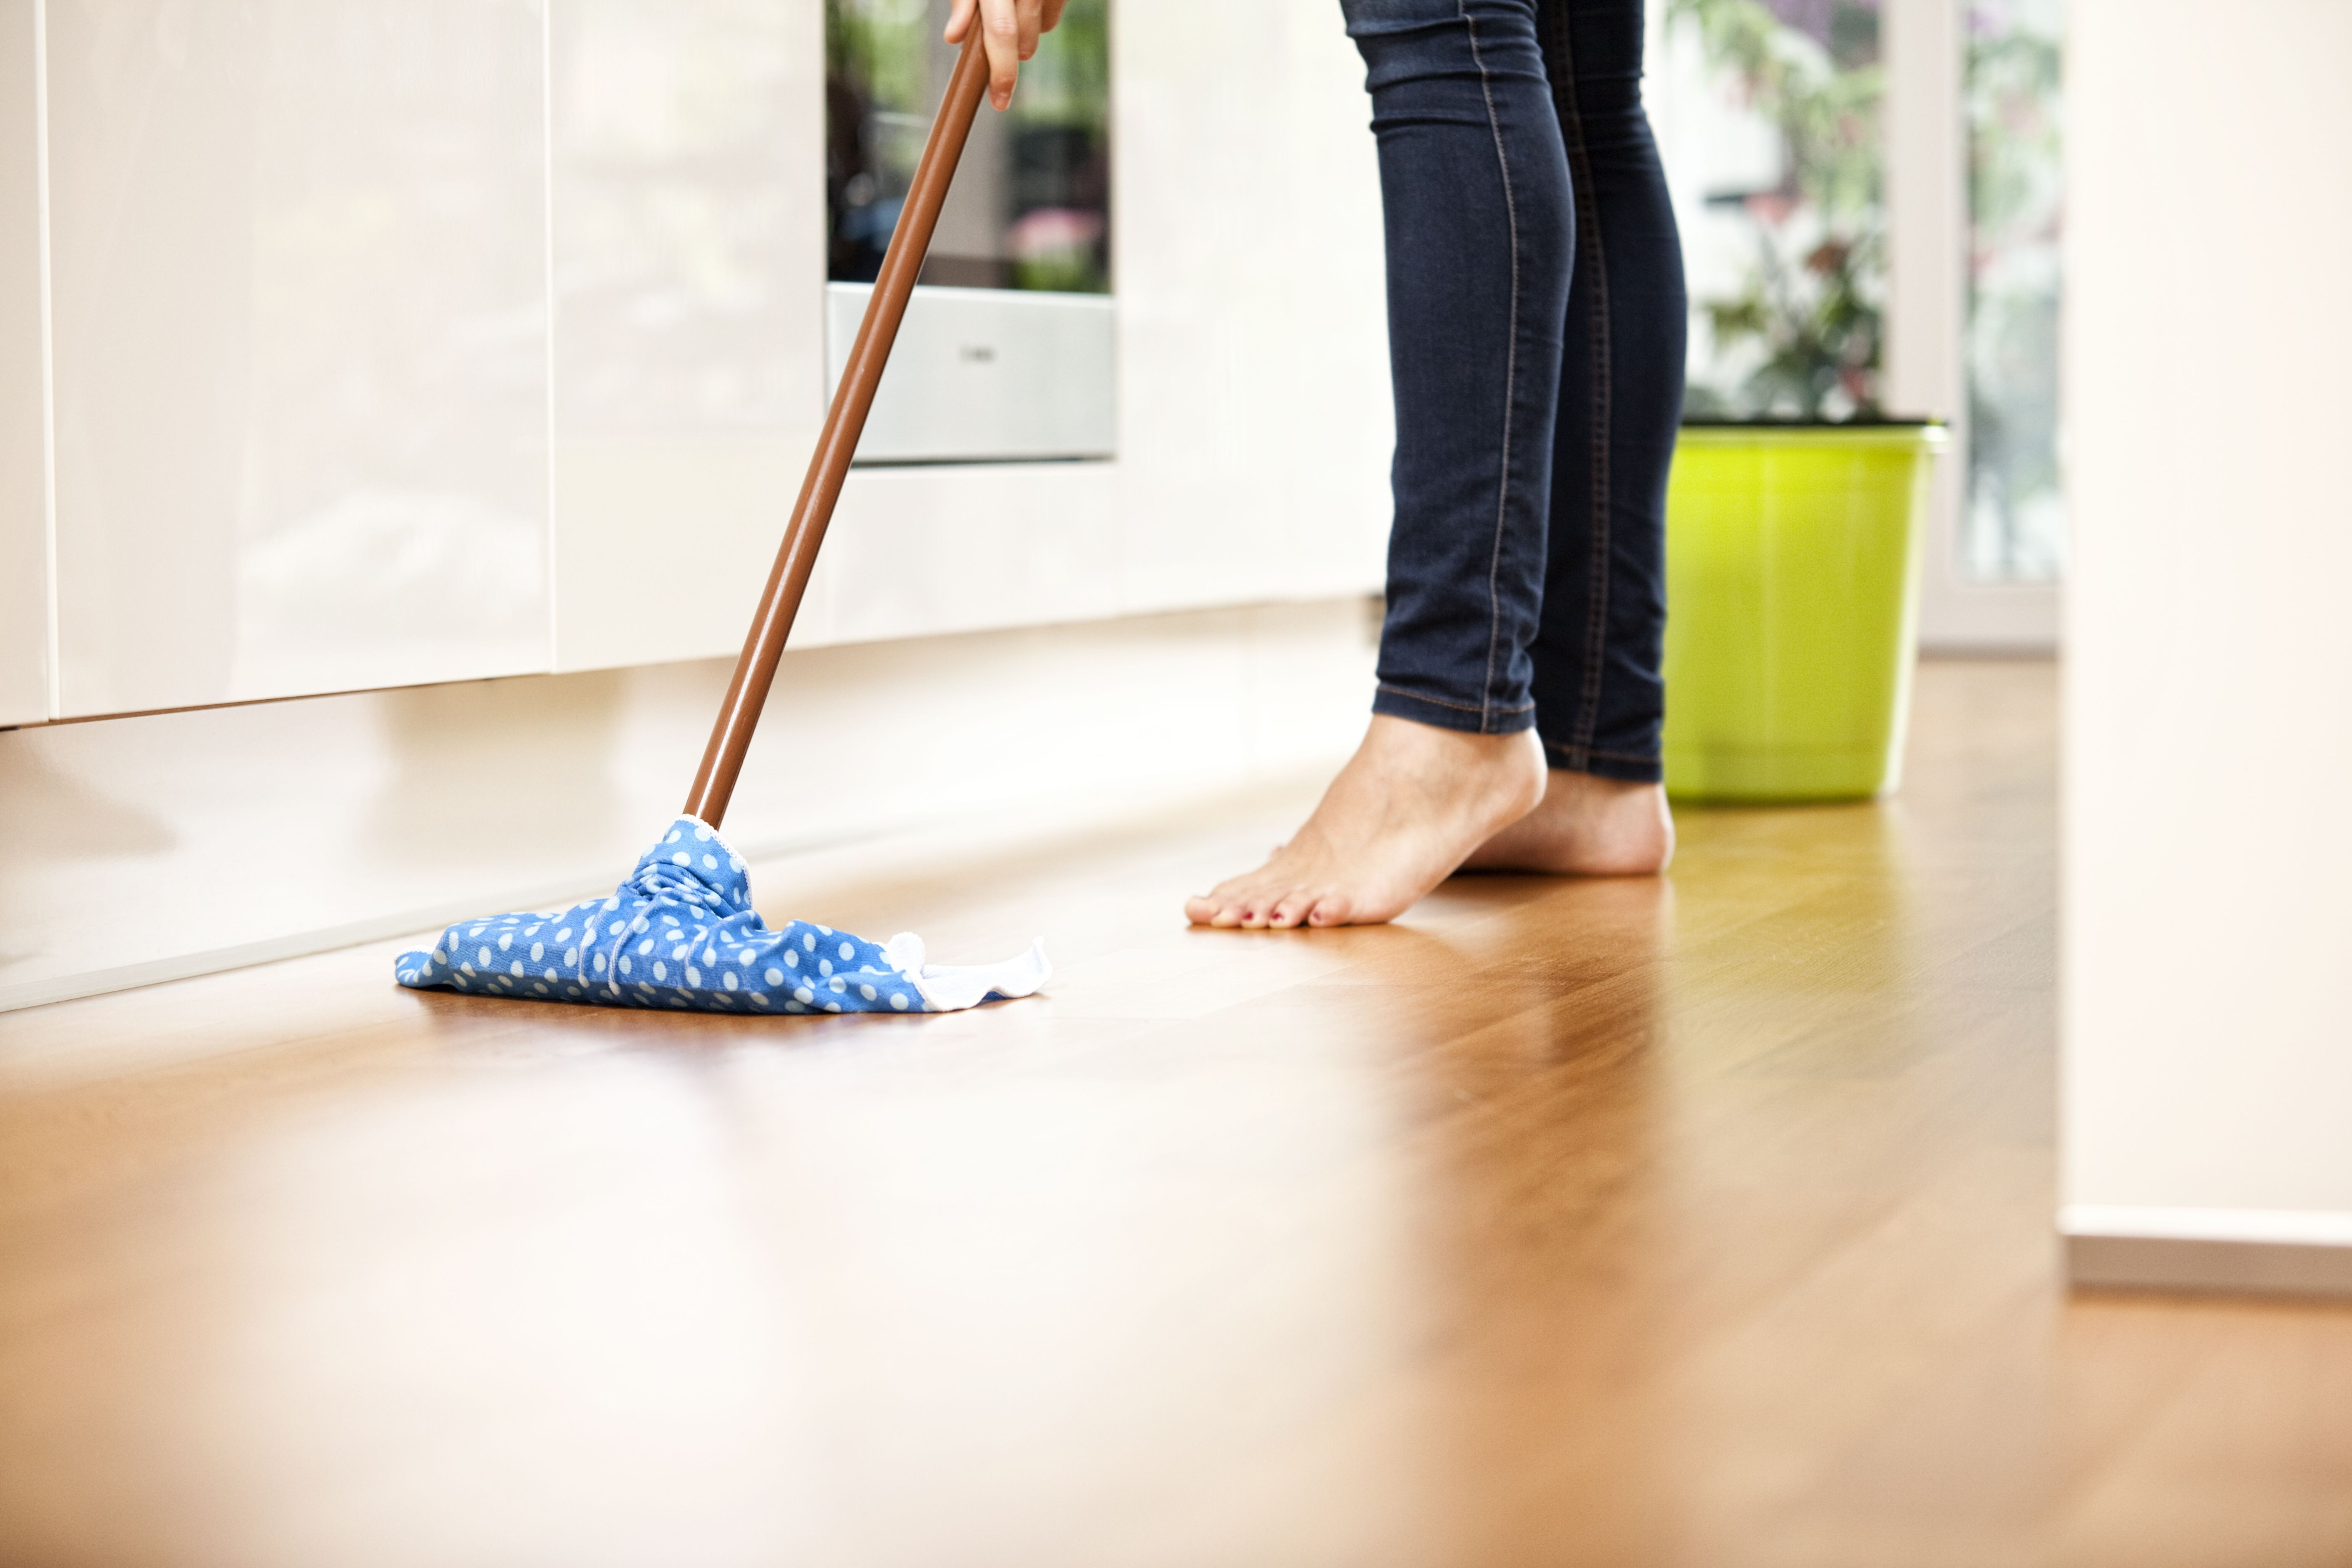 hardwood floor cleaner liquid of the right cleaners for your solid hardwood flooring inside woman wiping the floor 588494585 585049b43df78c491ebc200a